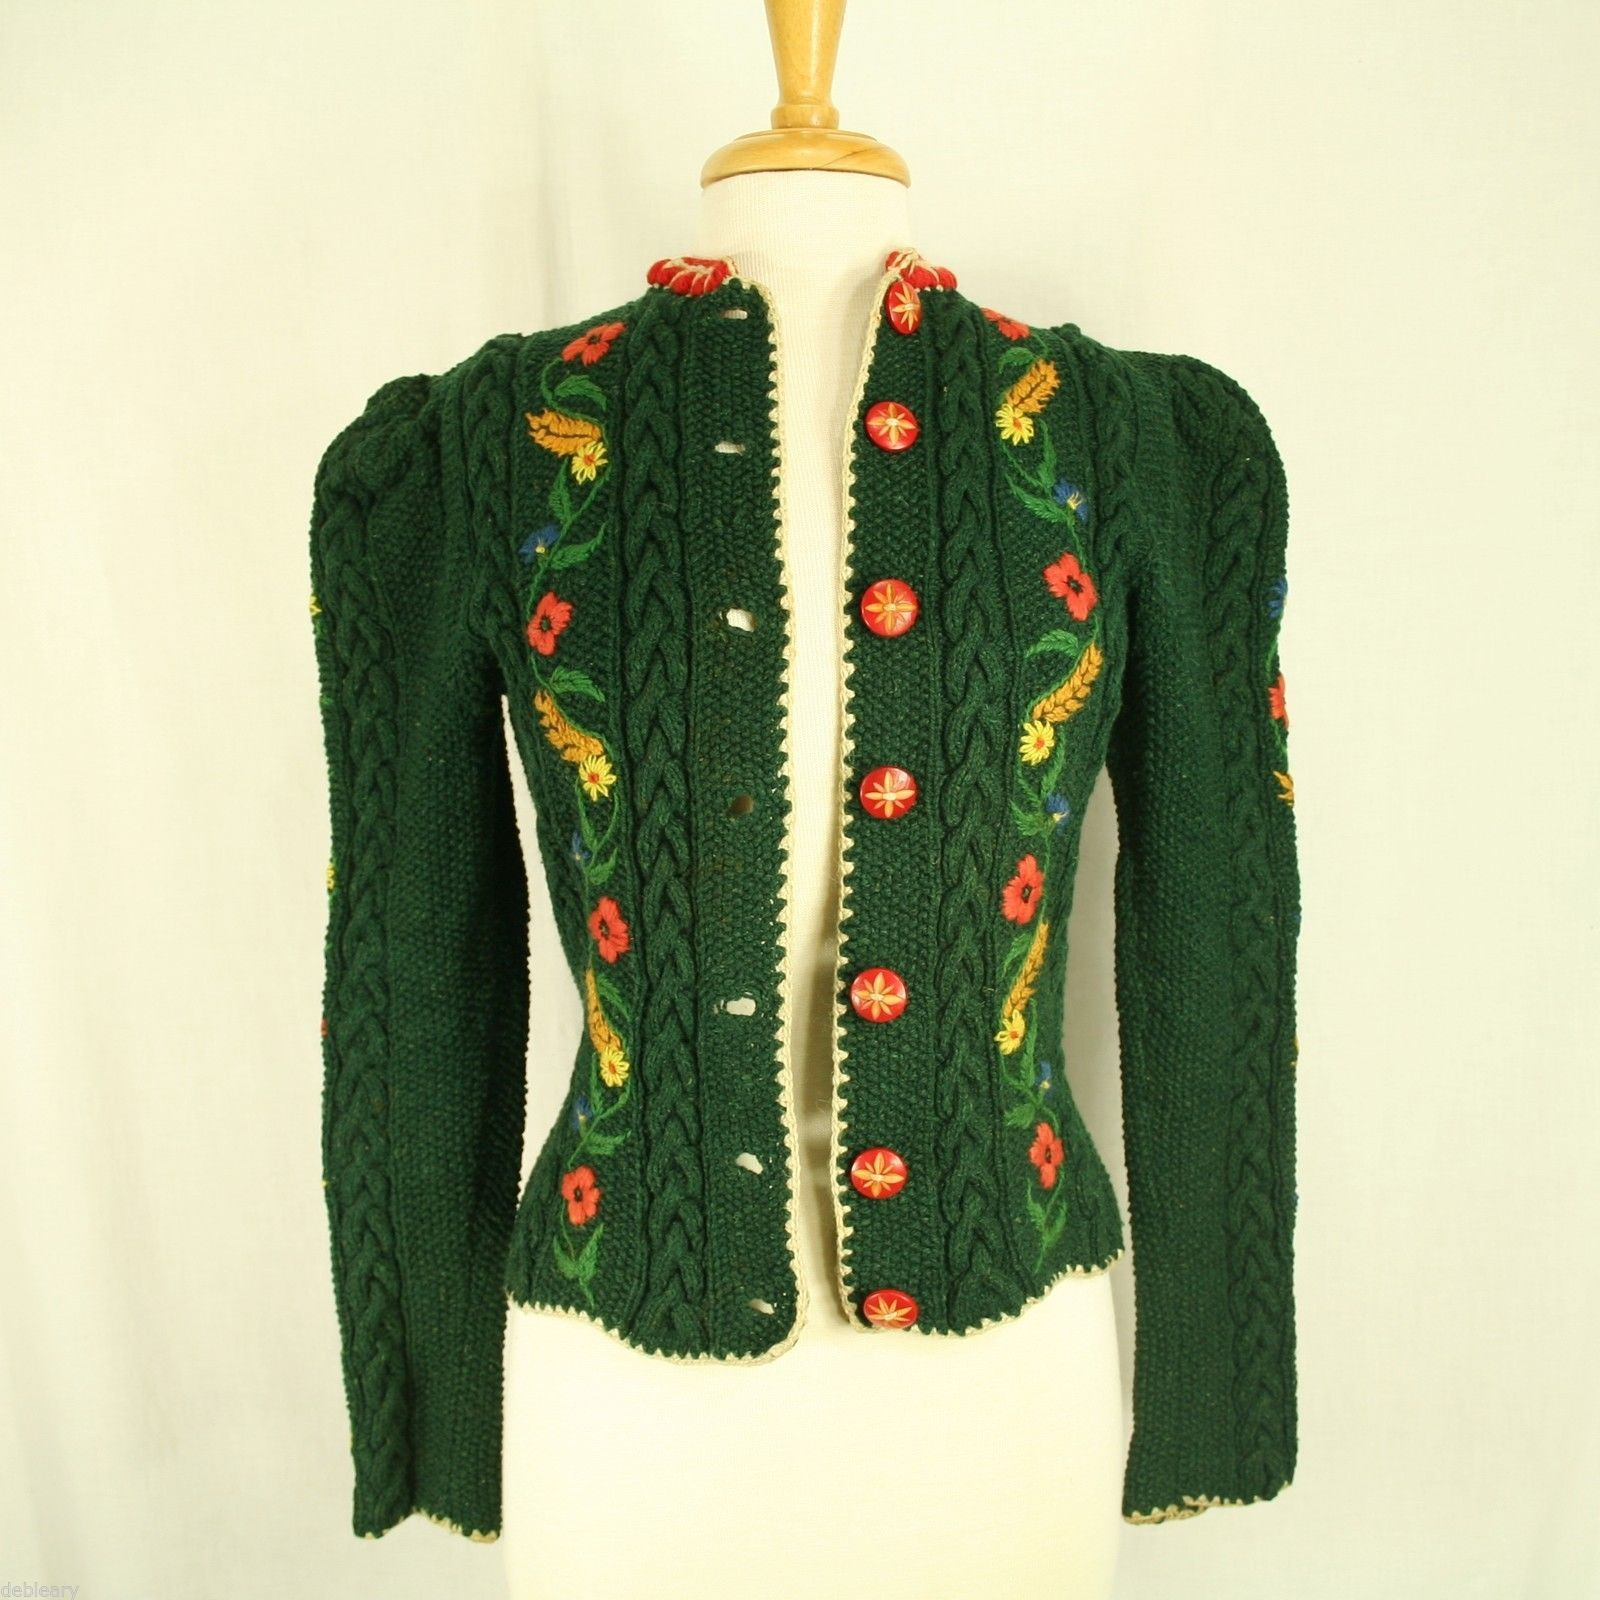 C 1940s Tyrolean Style Knitted Cardigan Retro Sweaters